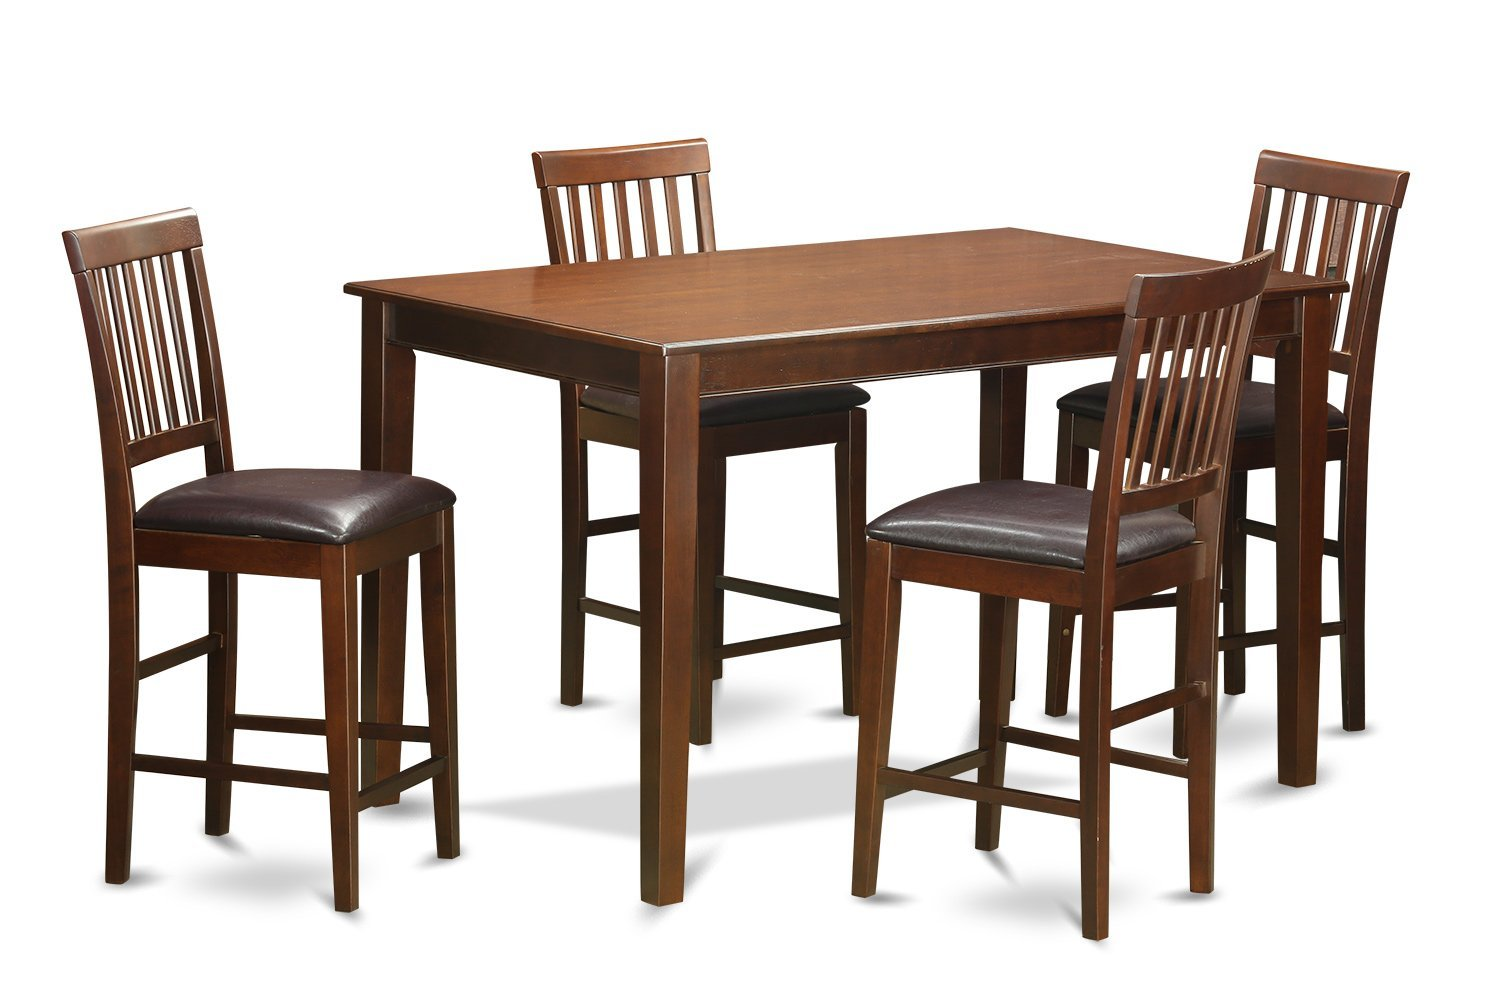 East West Furniture DUVN5H-MAH-LC 5-Piece Gathering Table Set, Mahogany Finish